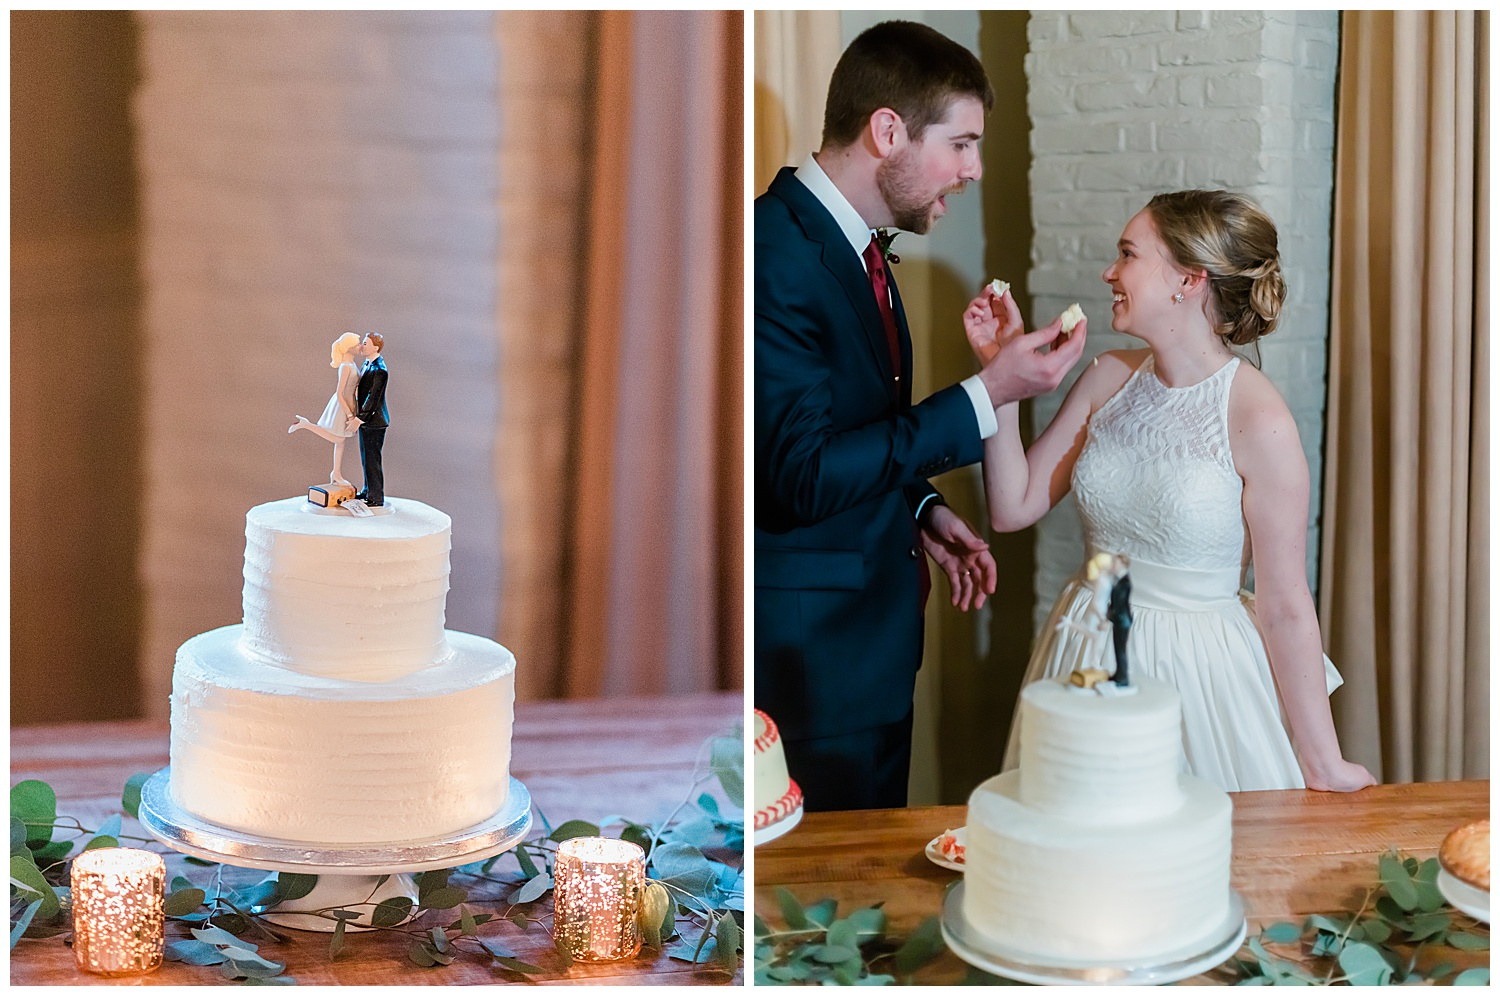 Early Mountain Vineyards Wedding Reception Cake cutting - Charlottesville, VA